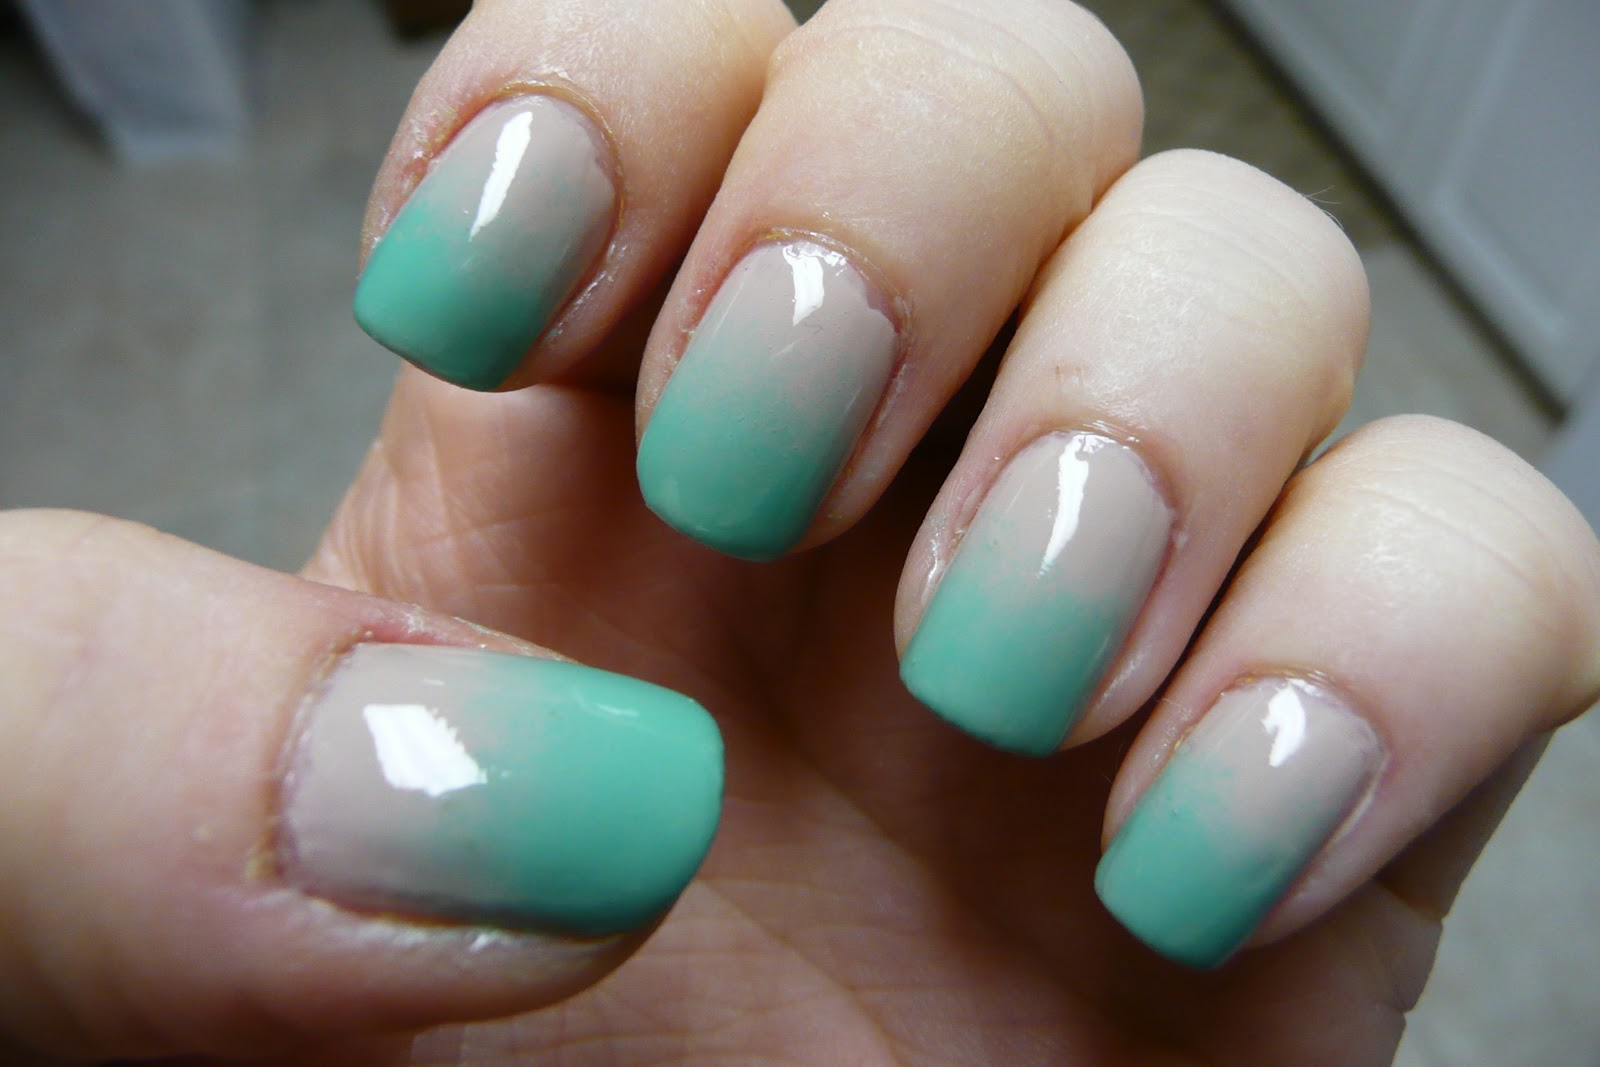 Nails of the Day(s) NOTD – Ombre pastels